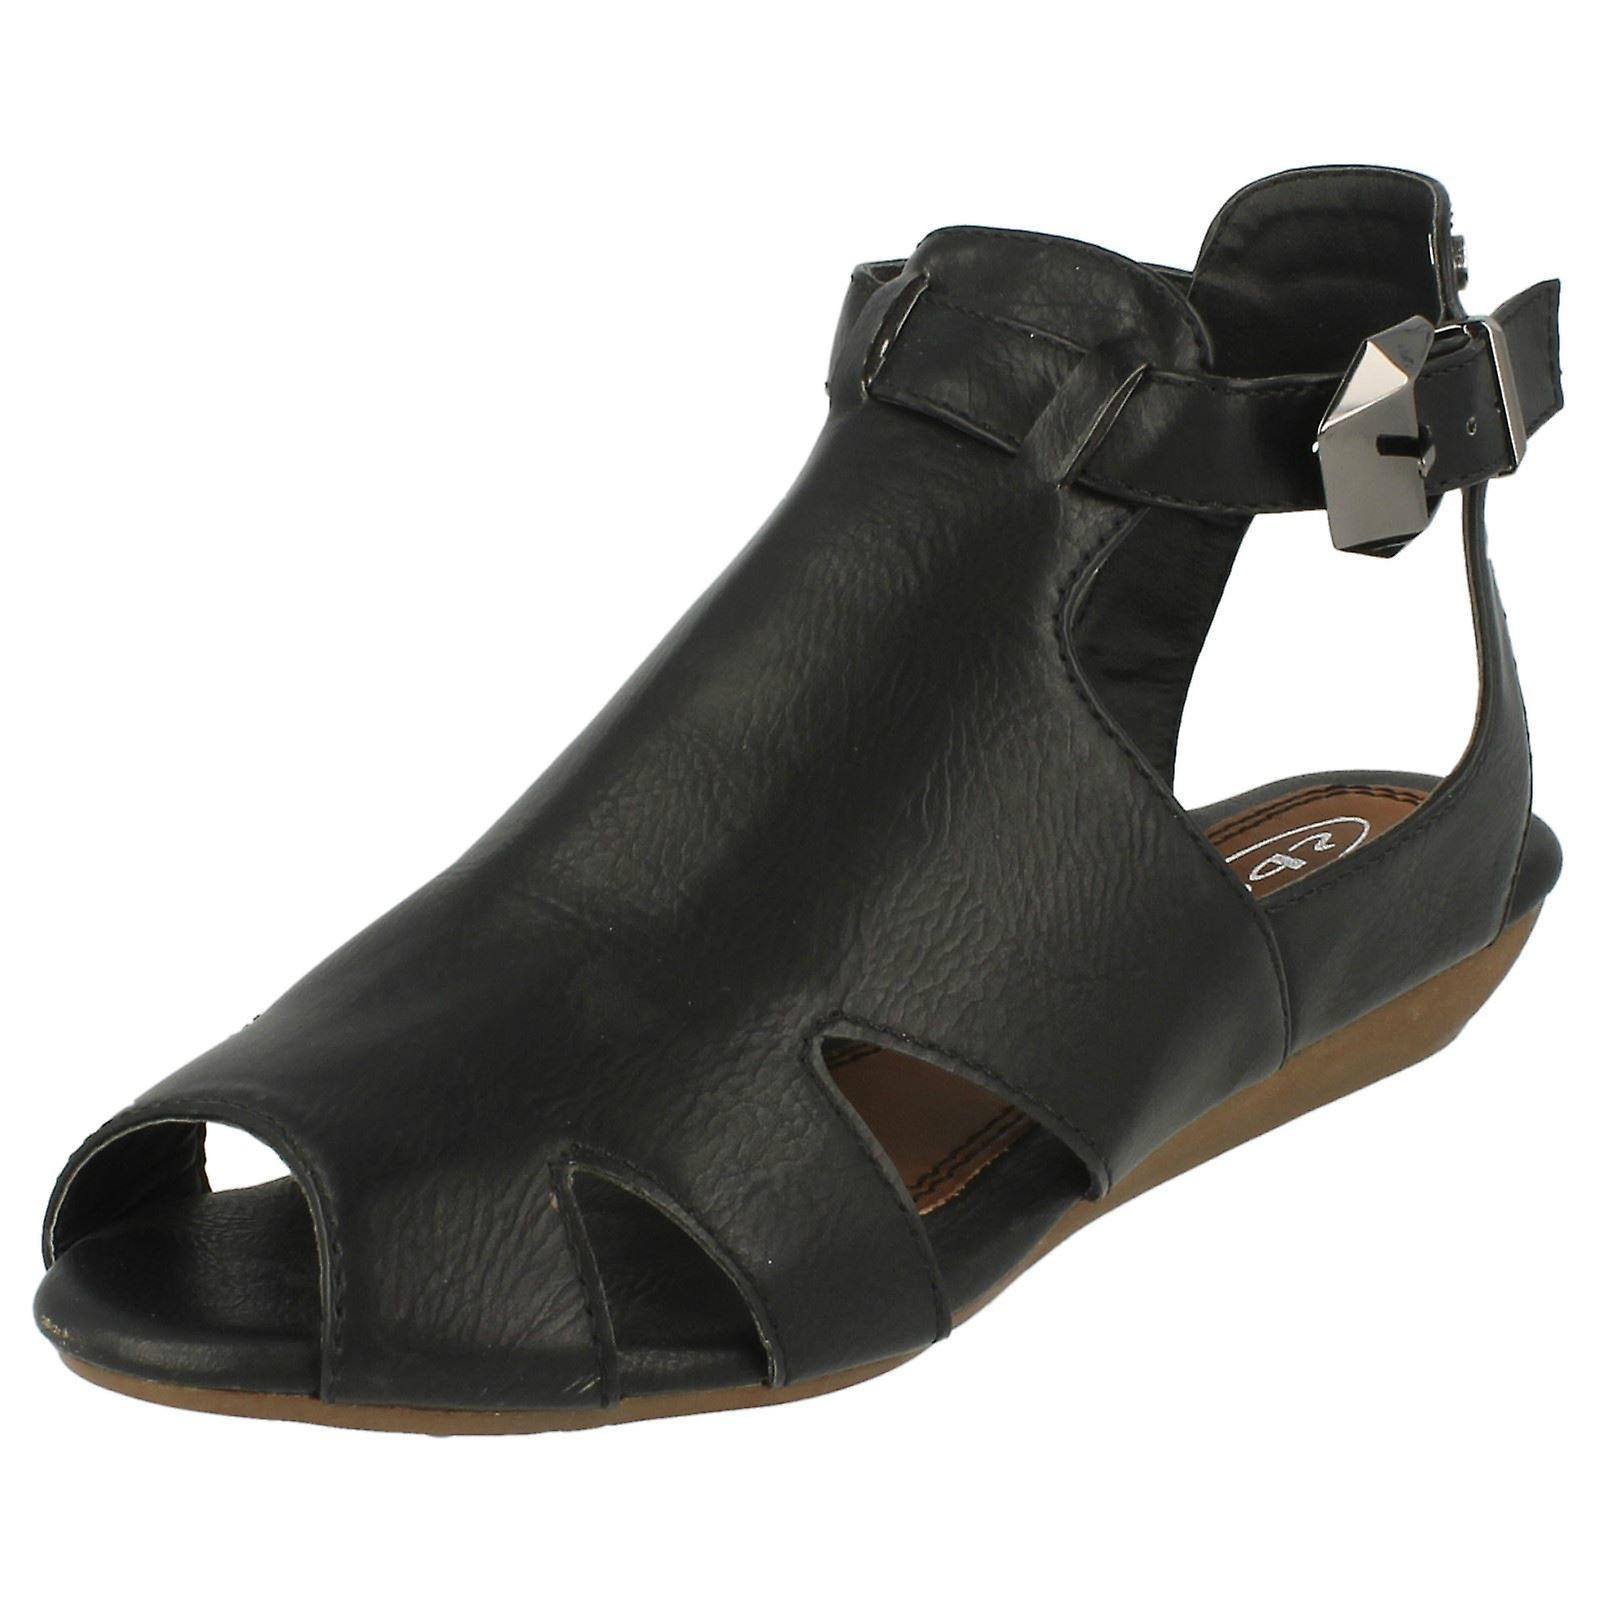 Ladies Spot On Low Wedge Cut Out Sandals 'F10223' ifCpQ